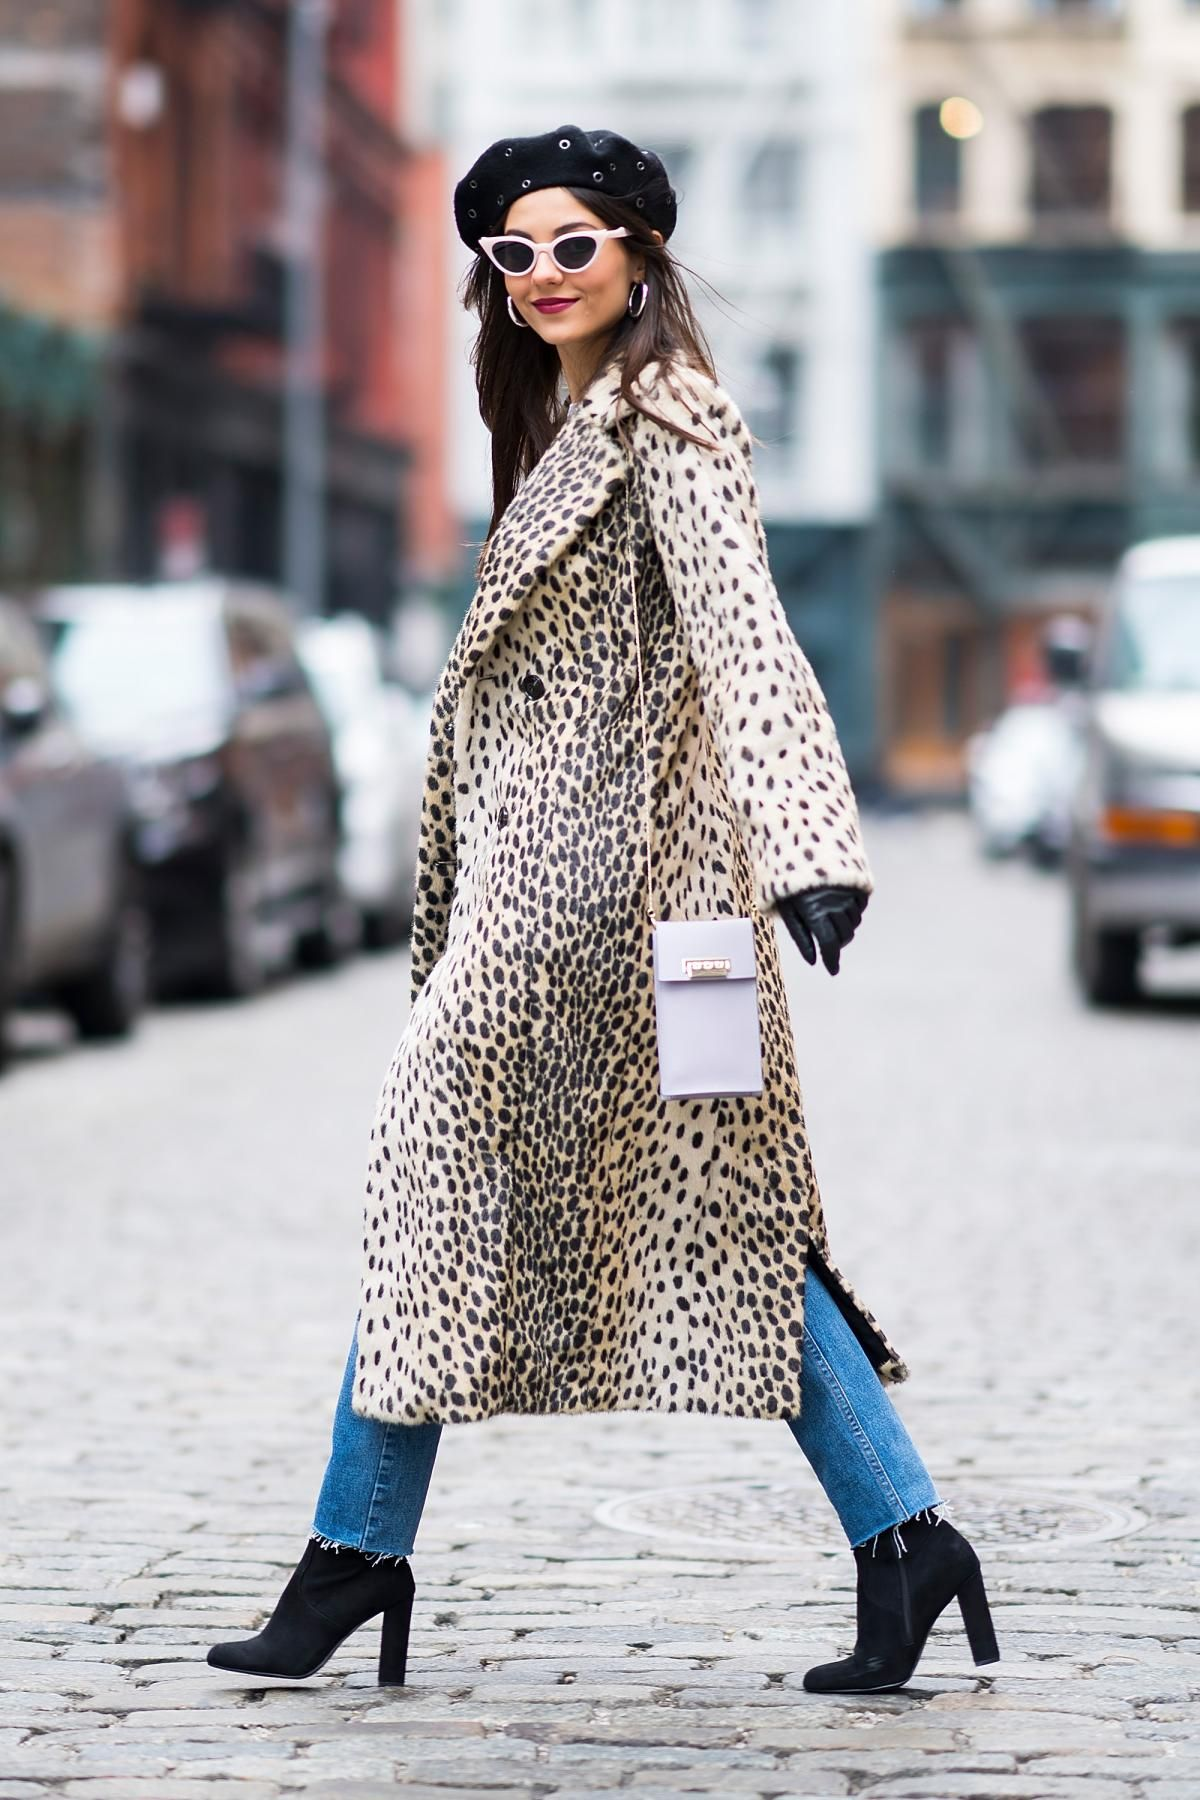 a16c0ddb897f Victoria Justice wearing Illesteva Isabella Sunglasses in Cotton Candy,  House of Harlow 1960 Perry Faux Fur Leopard Coat and Re/done Skinny  Distressed Jeans